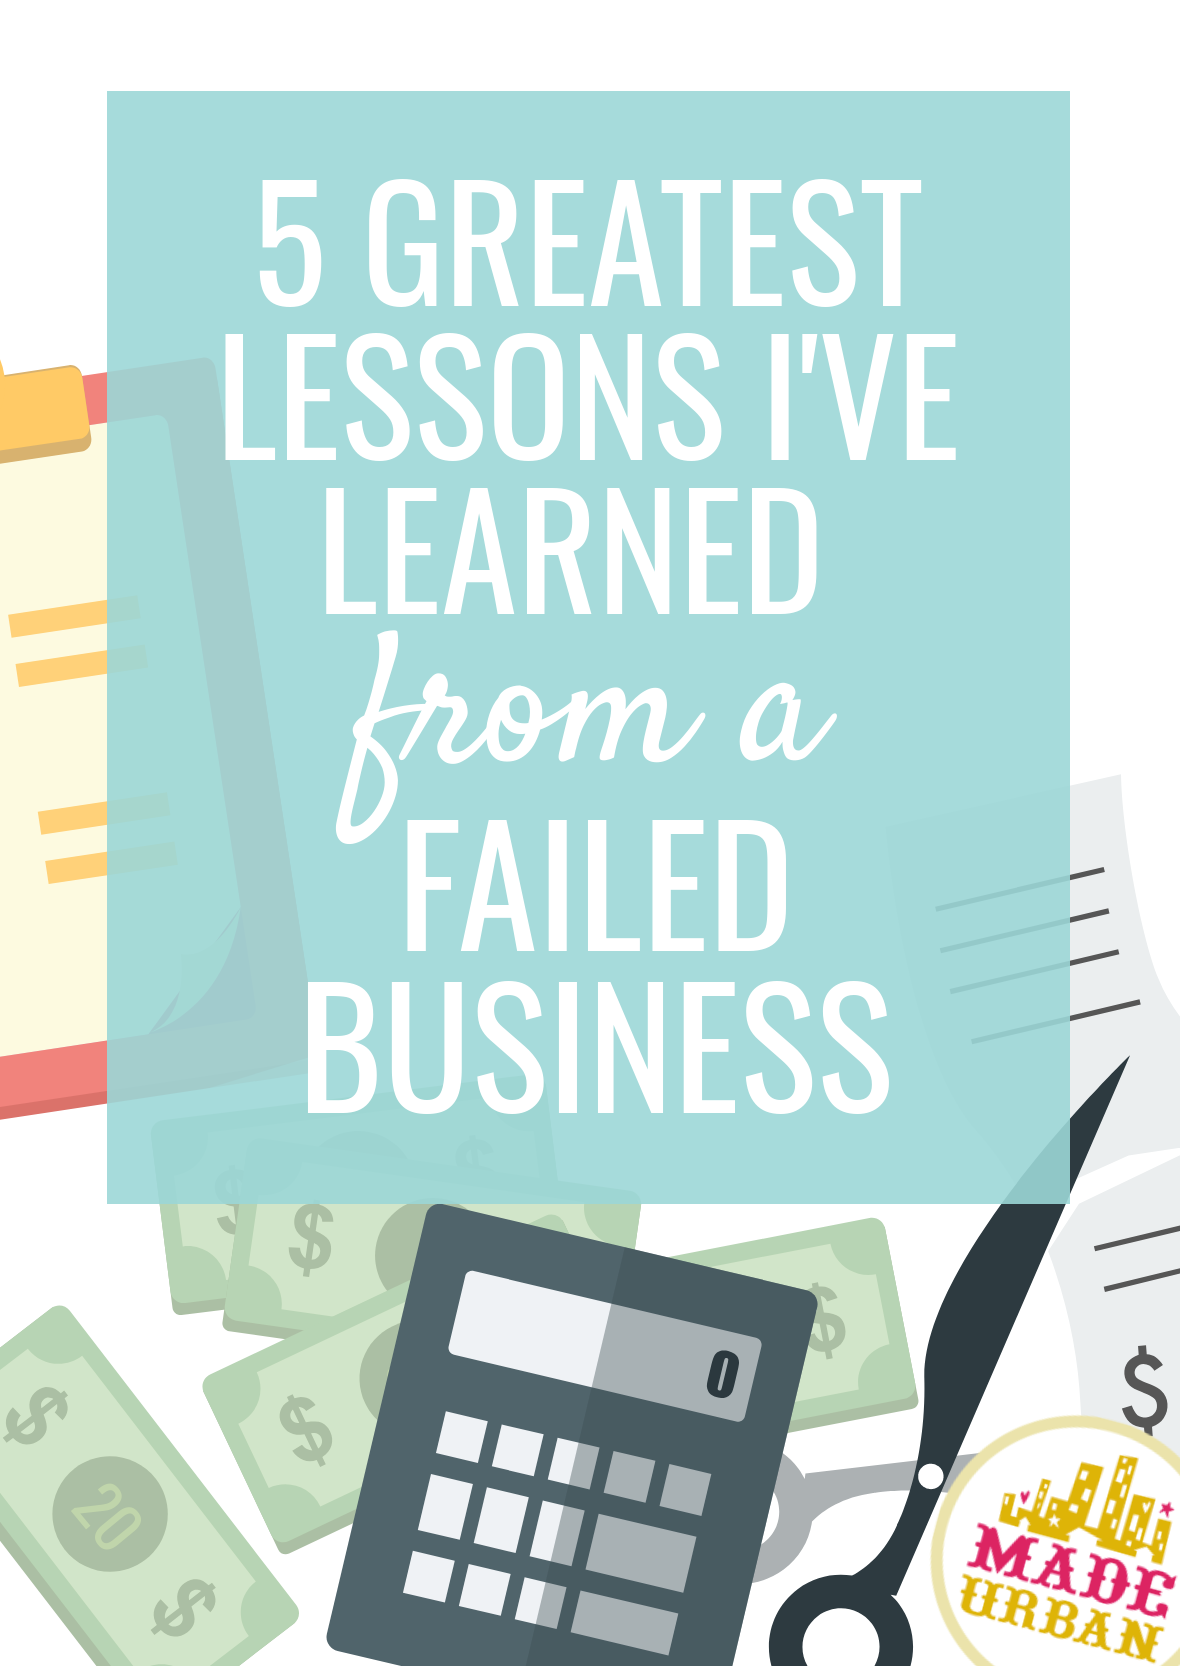 I learned a lot of valuable lessons from a failed business, and lost a lot of money. These are the five best lessons I gained from my failure.